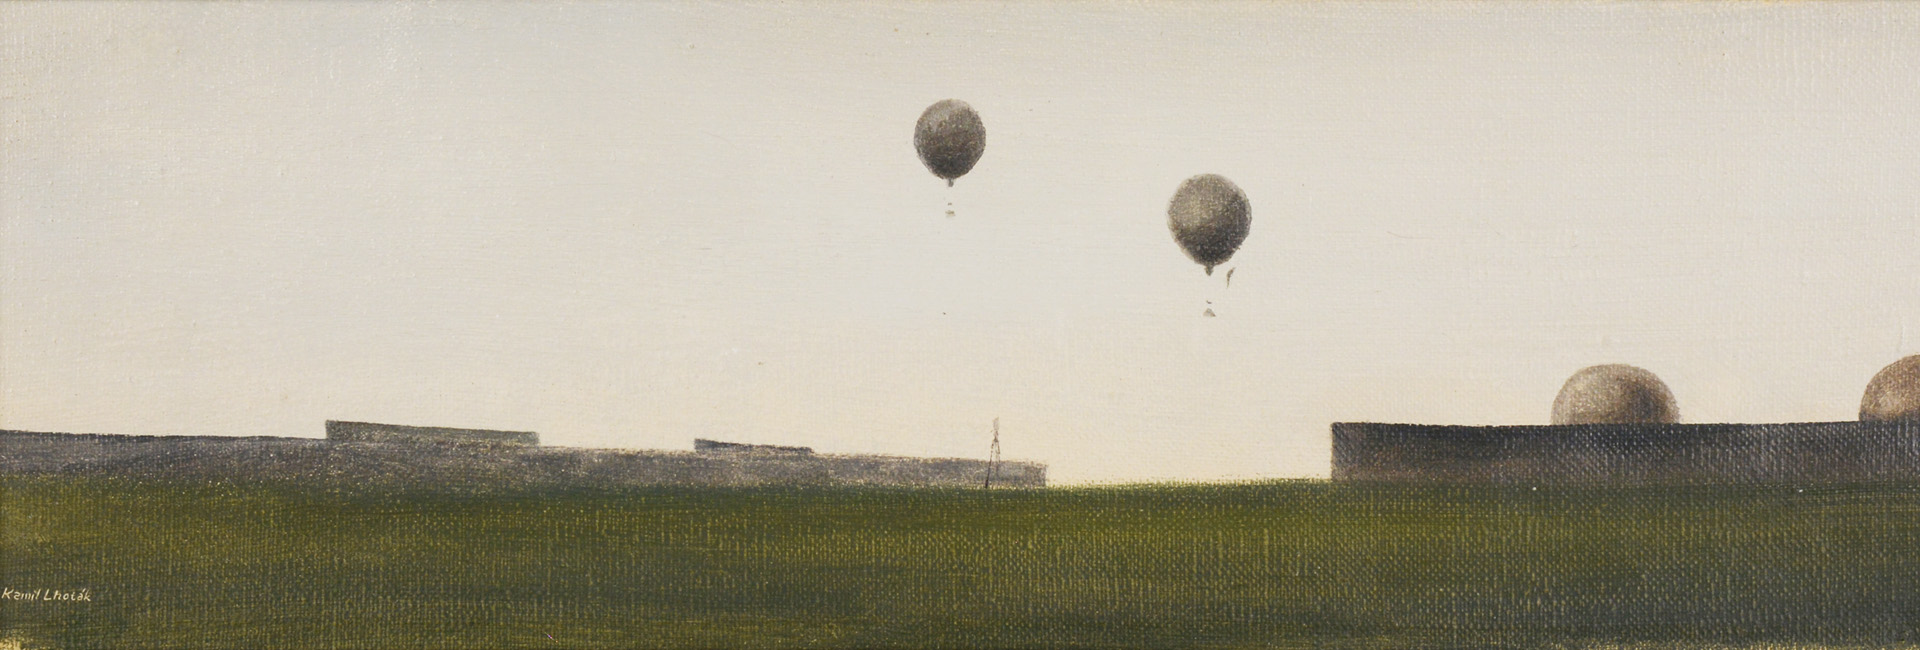 Hot air balloon races, 1942 | Sold for 1.620.000 CZK | Lot. nr. 182 [Kamil Lhoták (1912 - 1990)]